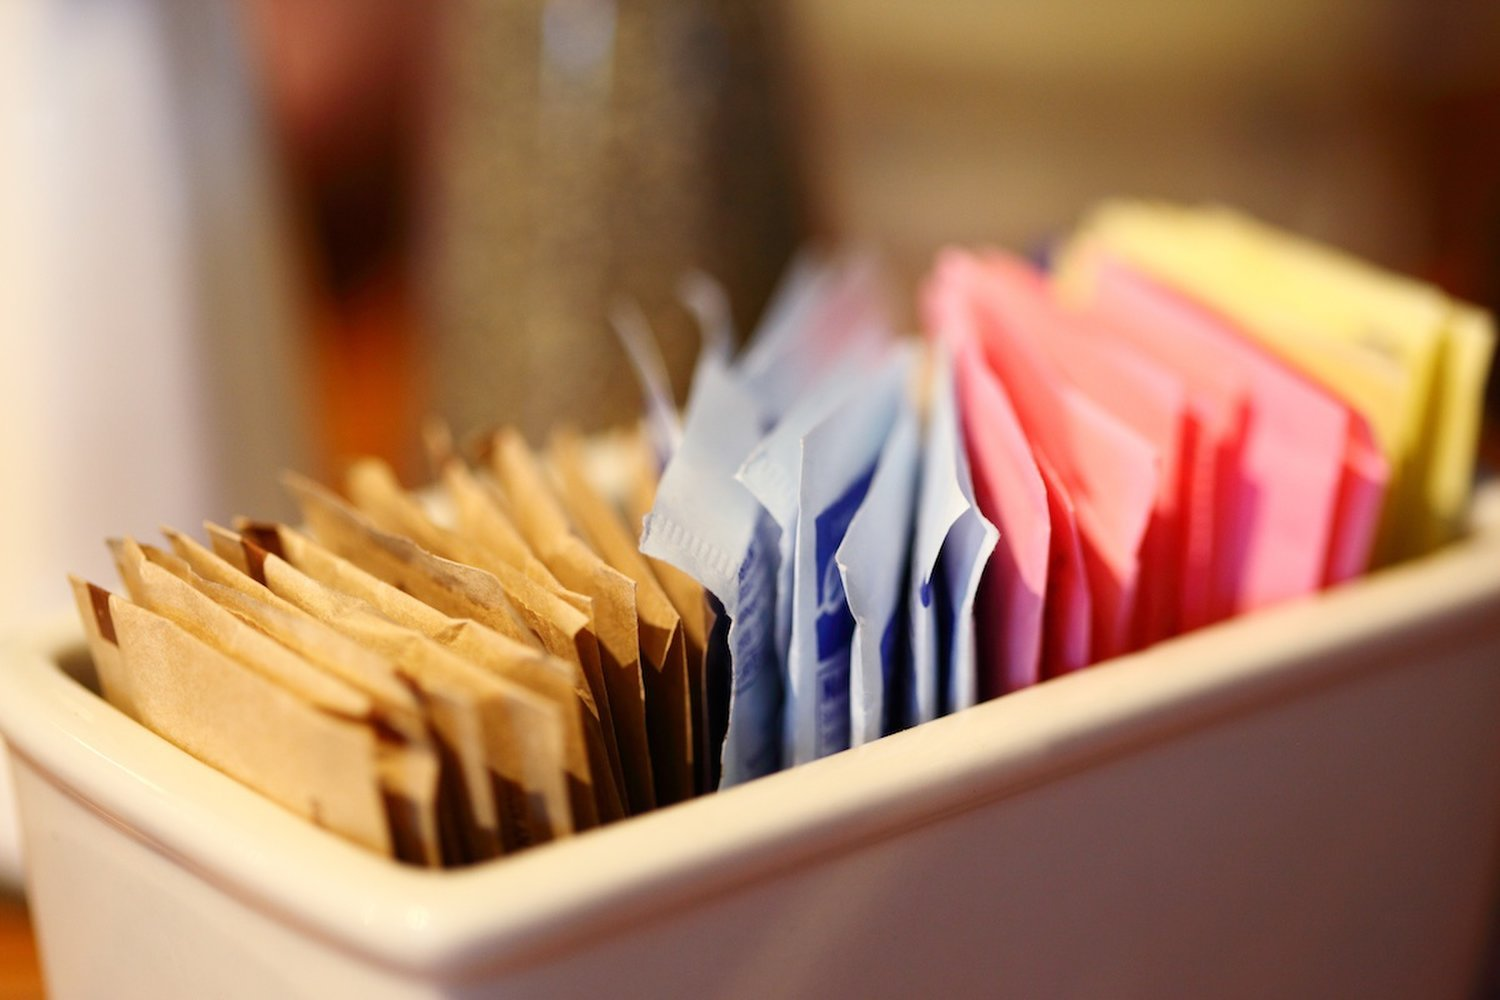 Sugar Substitutes May Not Help You Lose Weight, New Review Finds